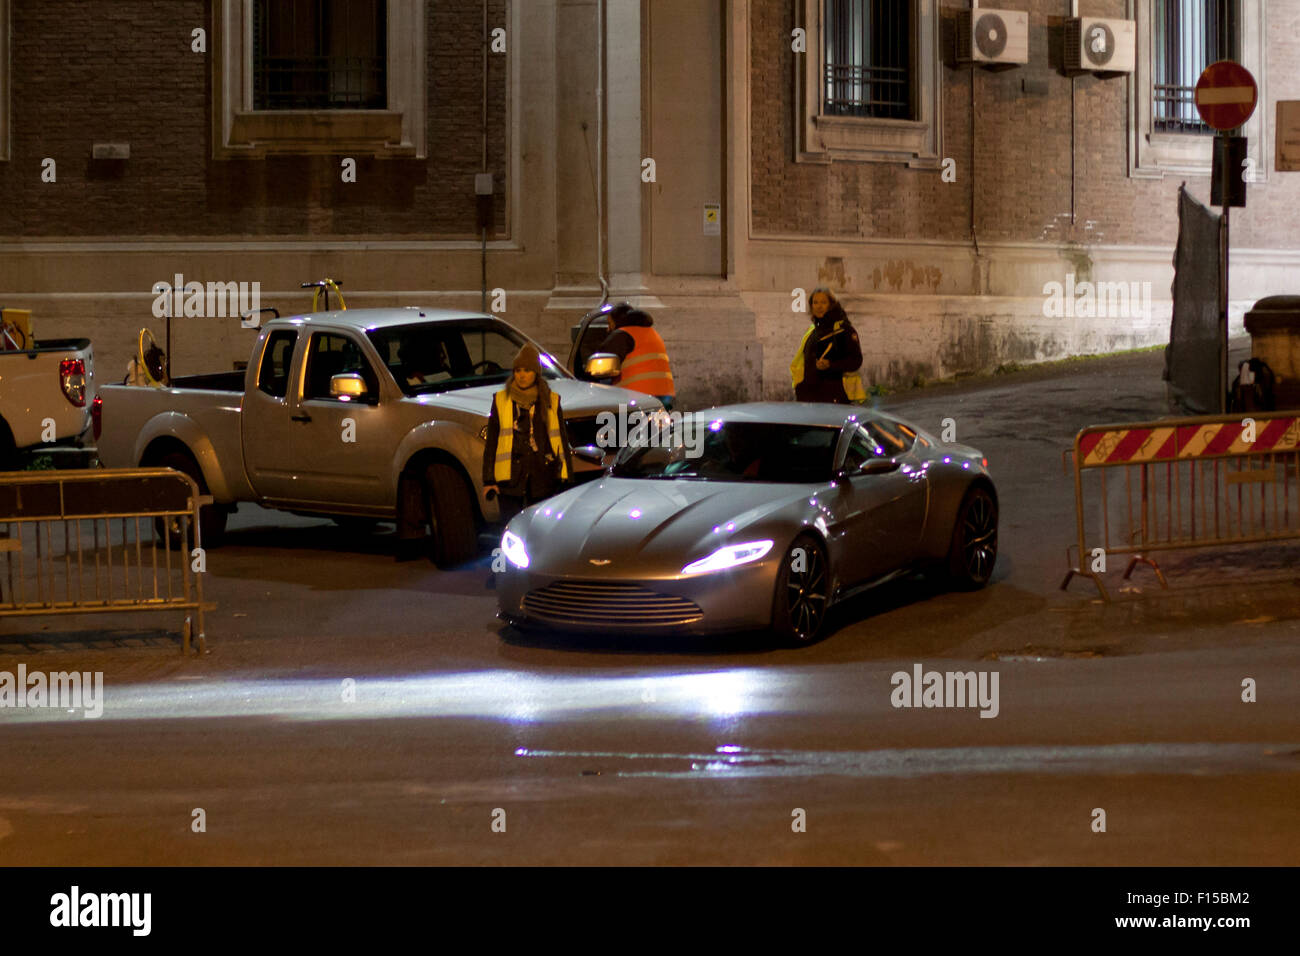 Rome, Italy. 8th March, 2015. Filming car chase scene for James Bond movie 'Spectre' in Rome, Italy. Pictured - Stock Image